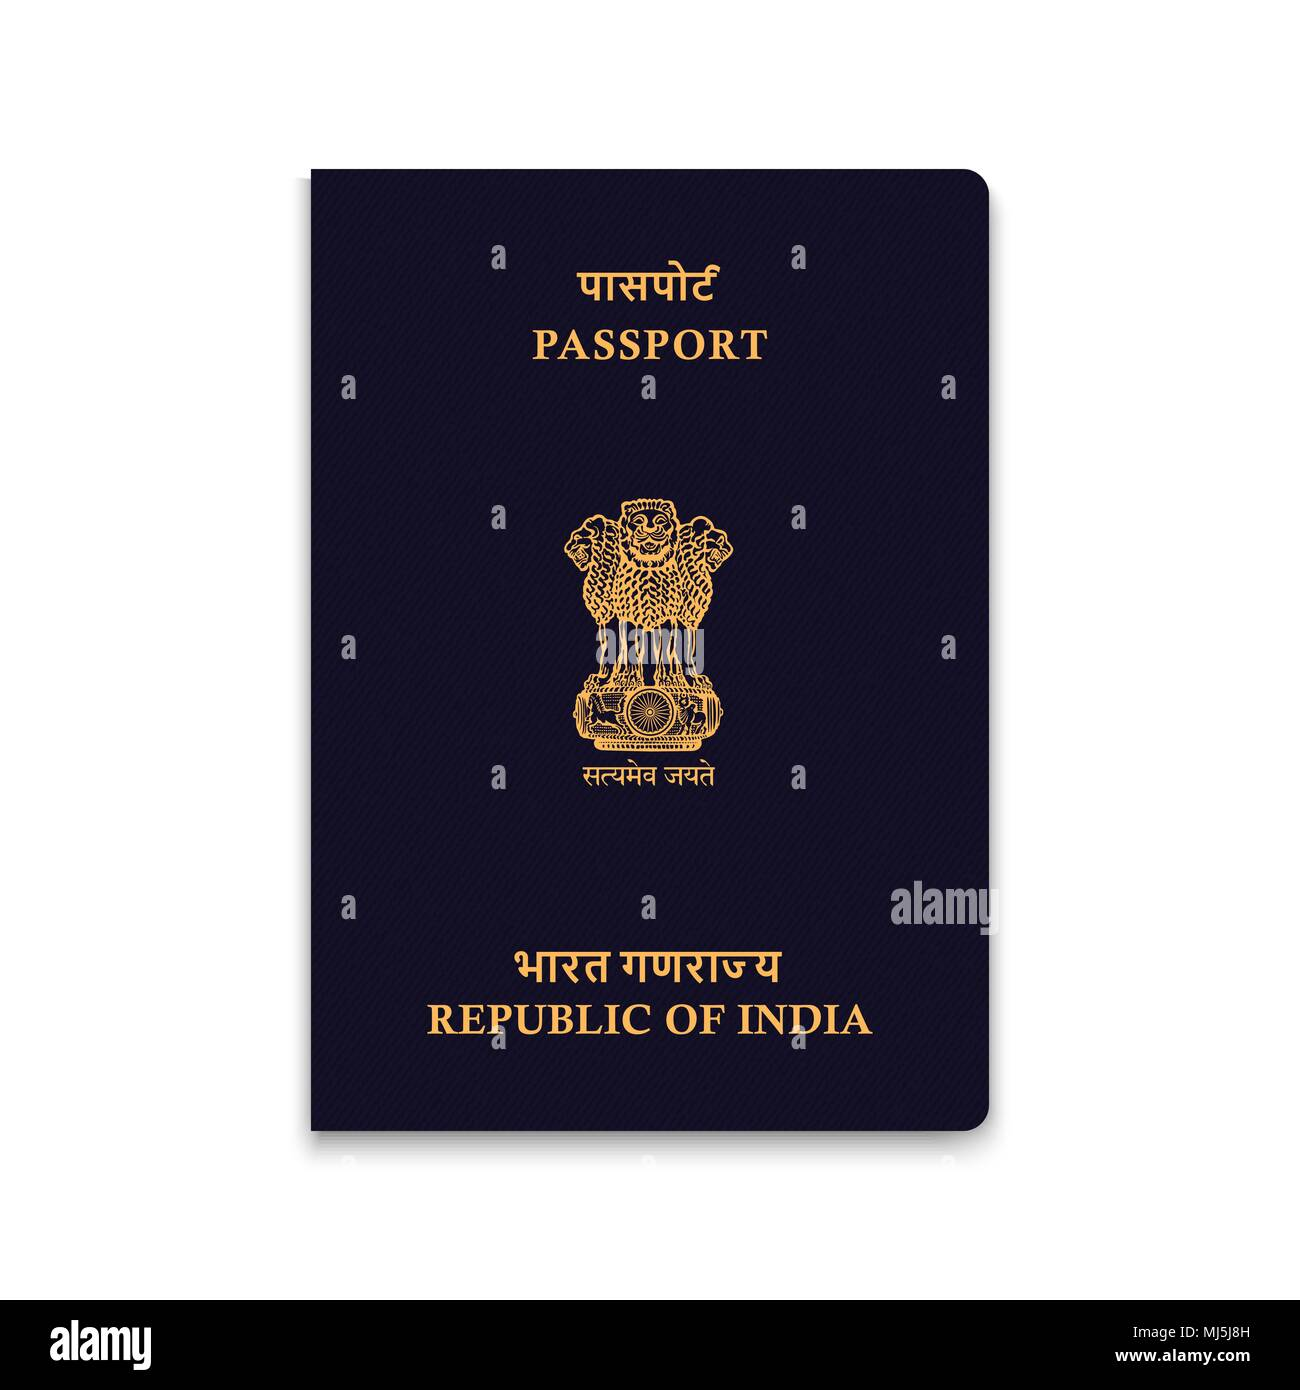 Passport of India. Vector illustration - Stock Image